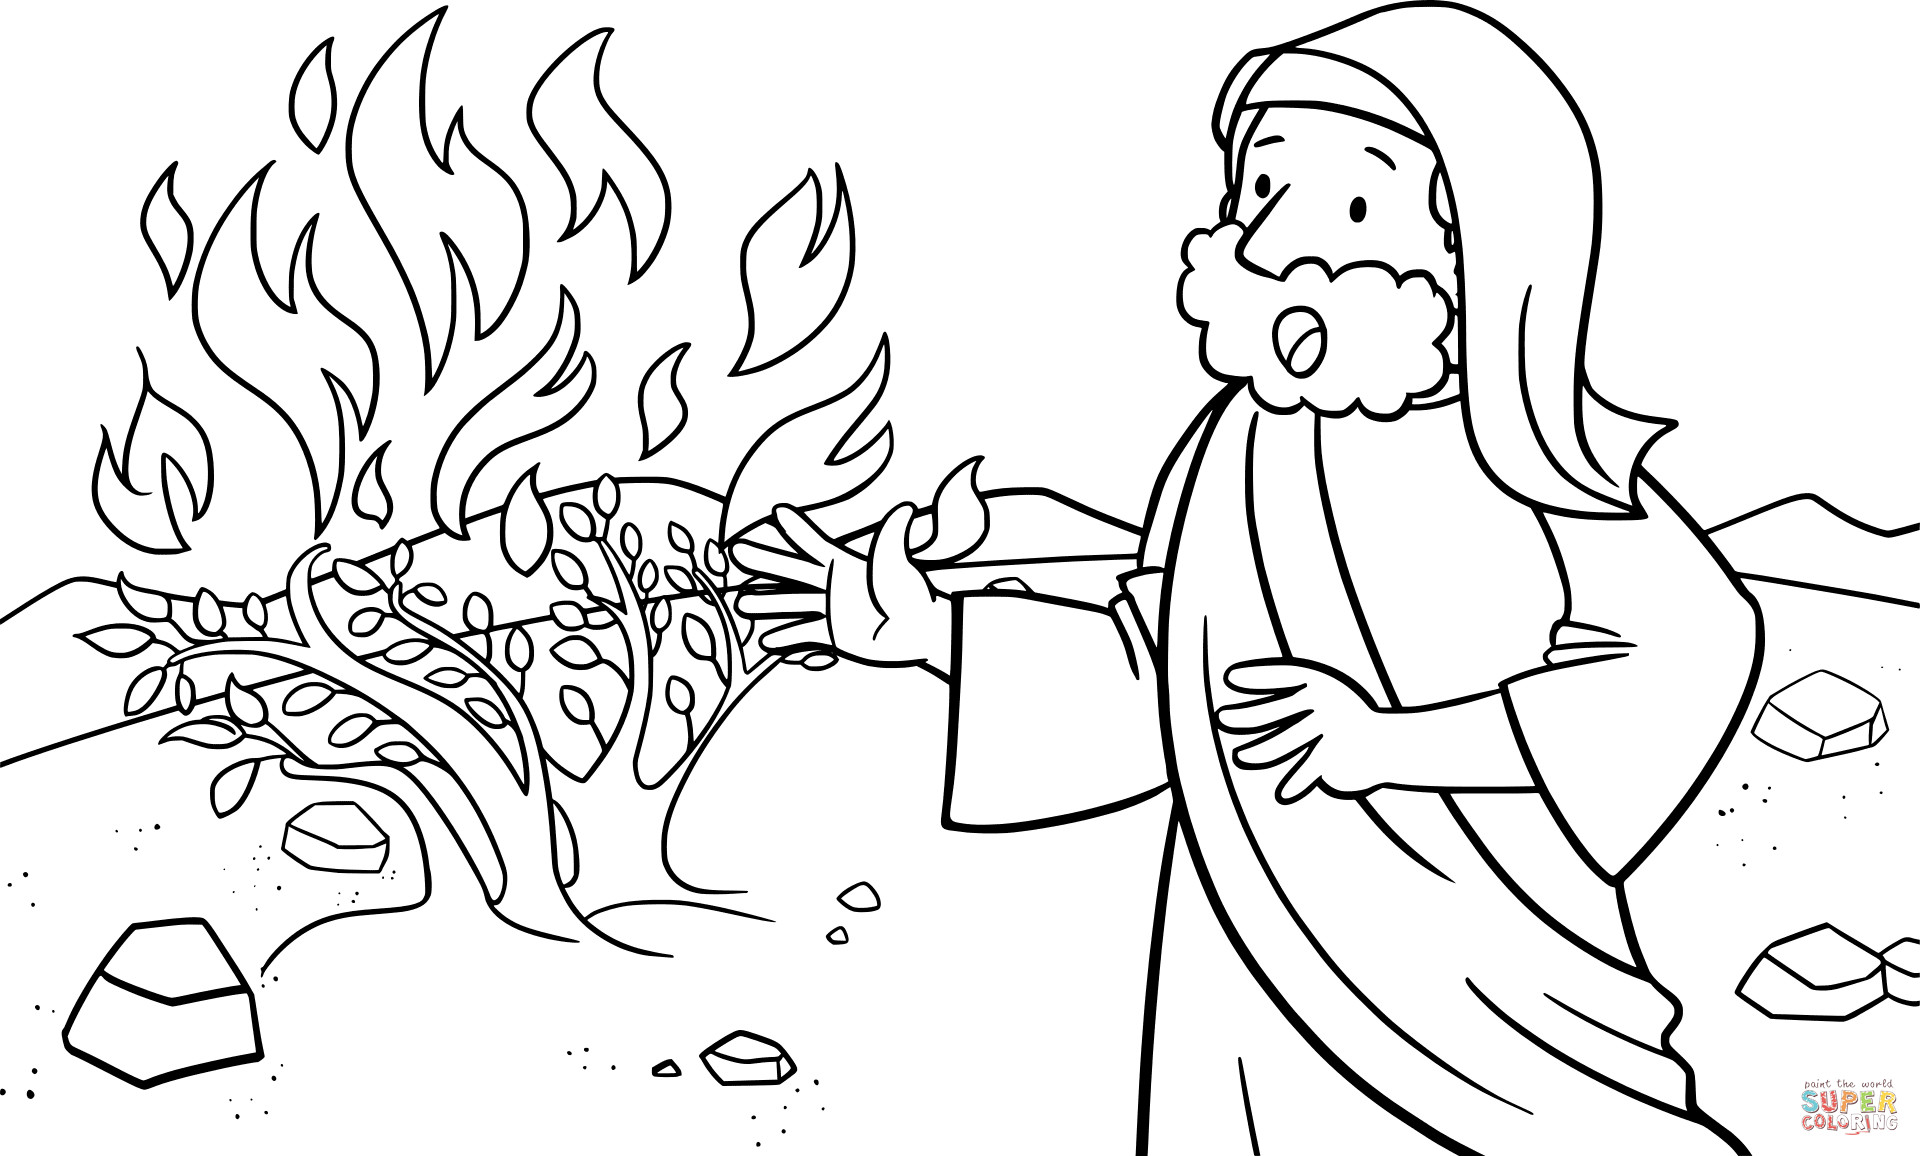 1920x1156 Moses And The Burning Bush Coloring Pages Inspirational Moses